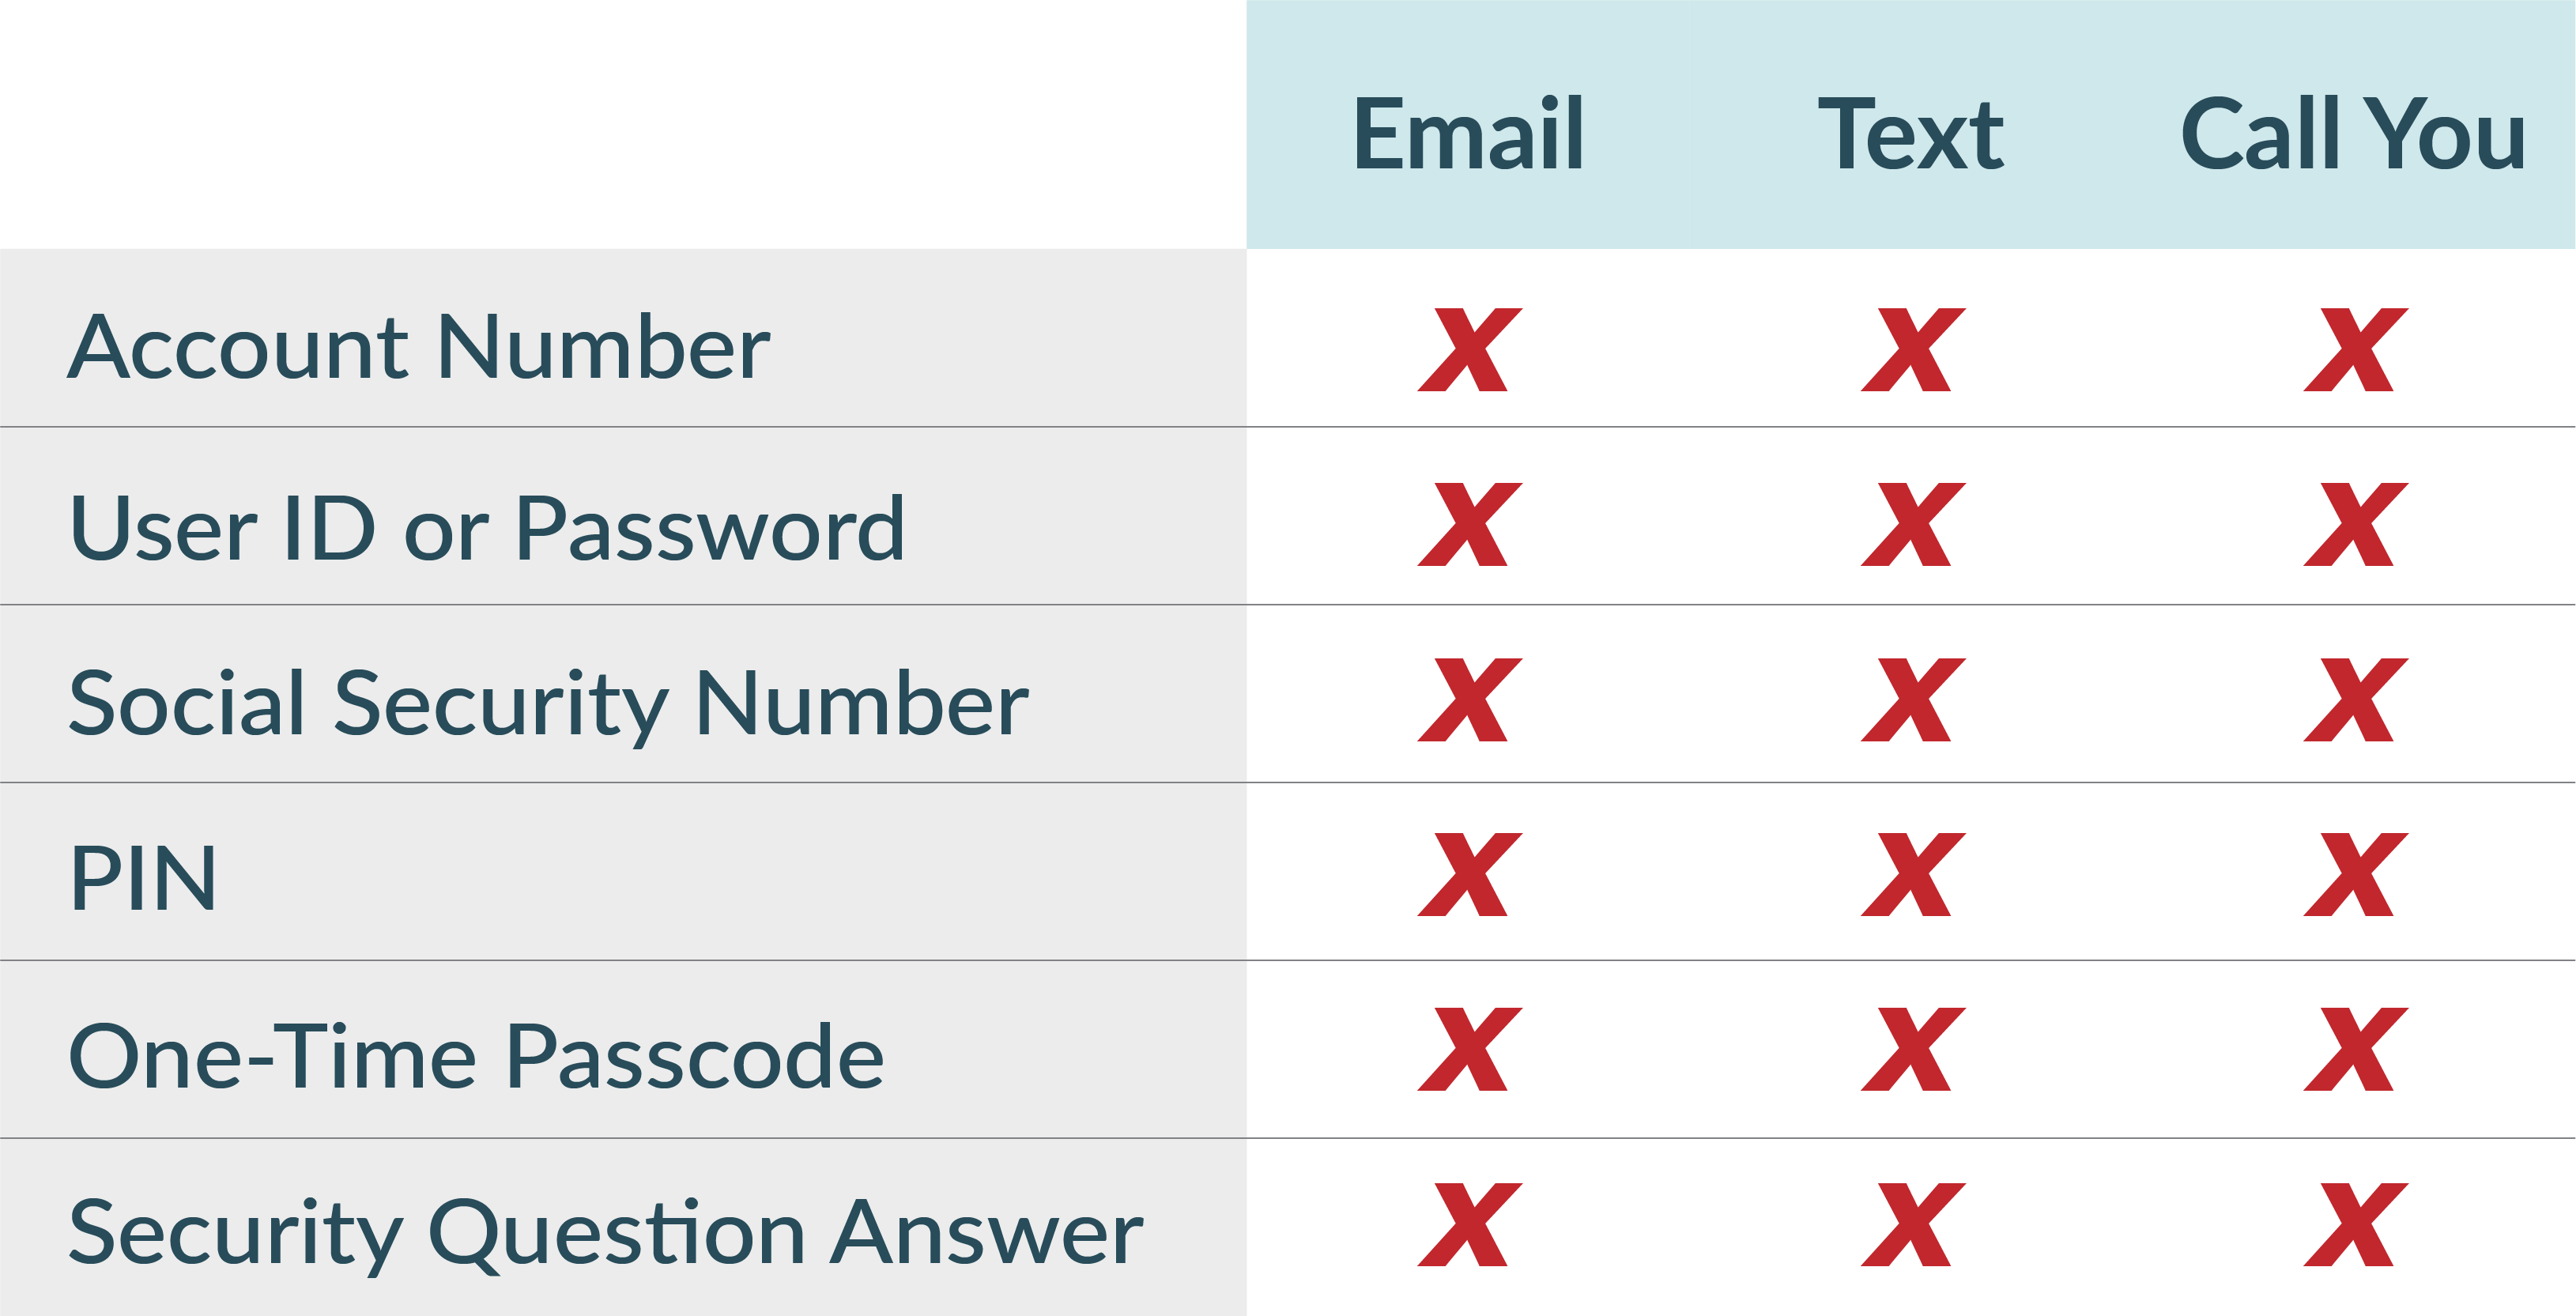 a chart showing that JFG will never call, text or email you about personal information.